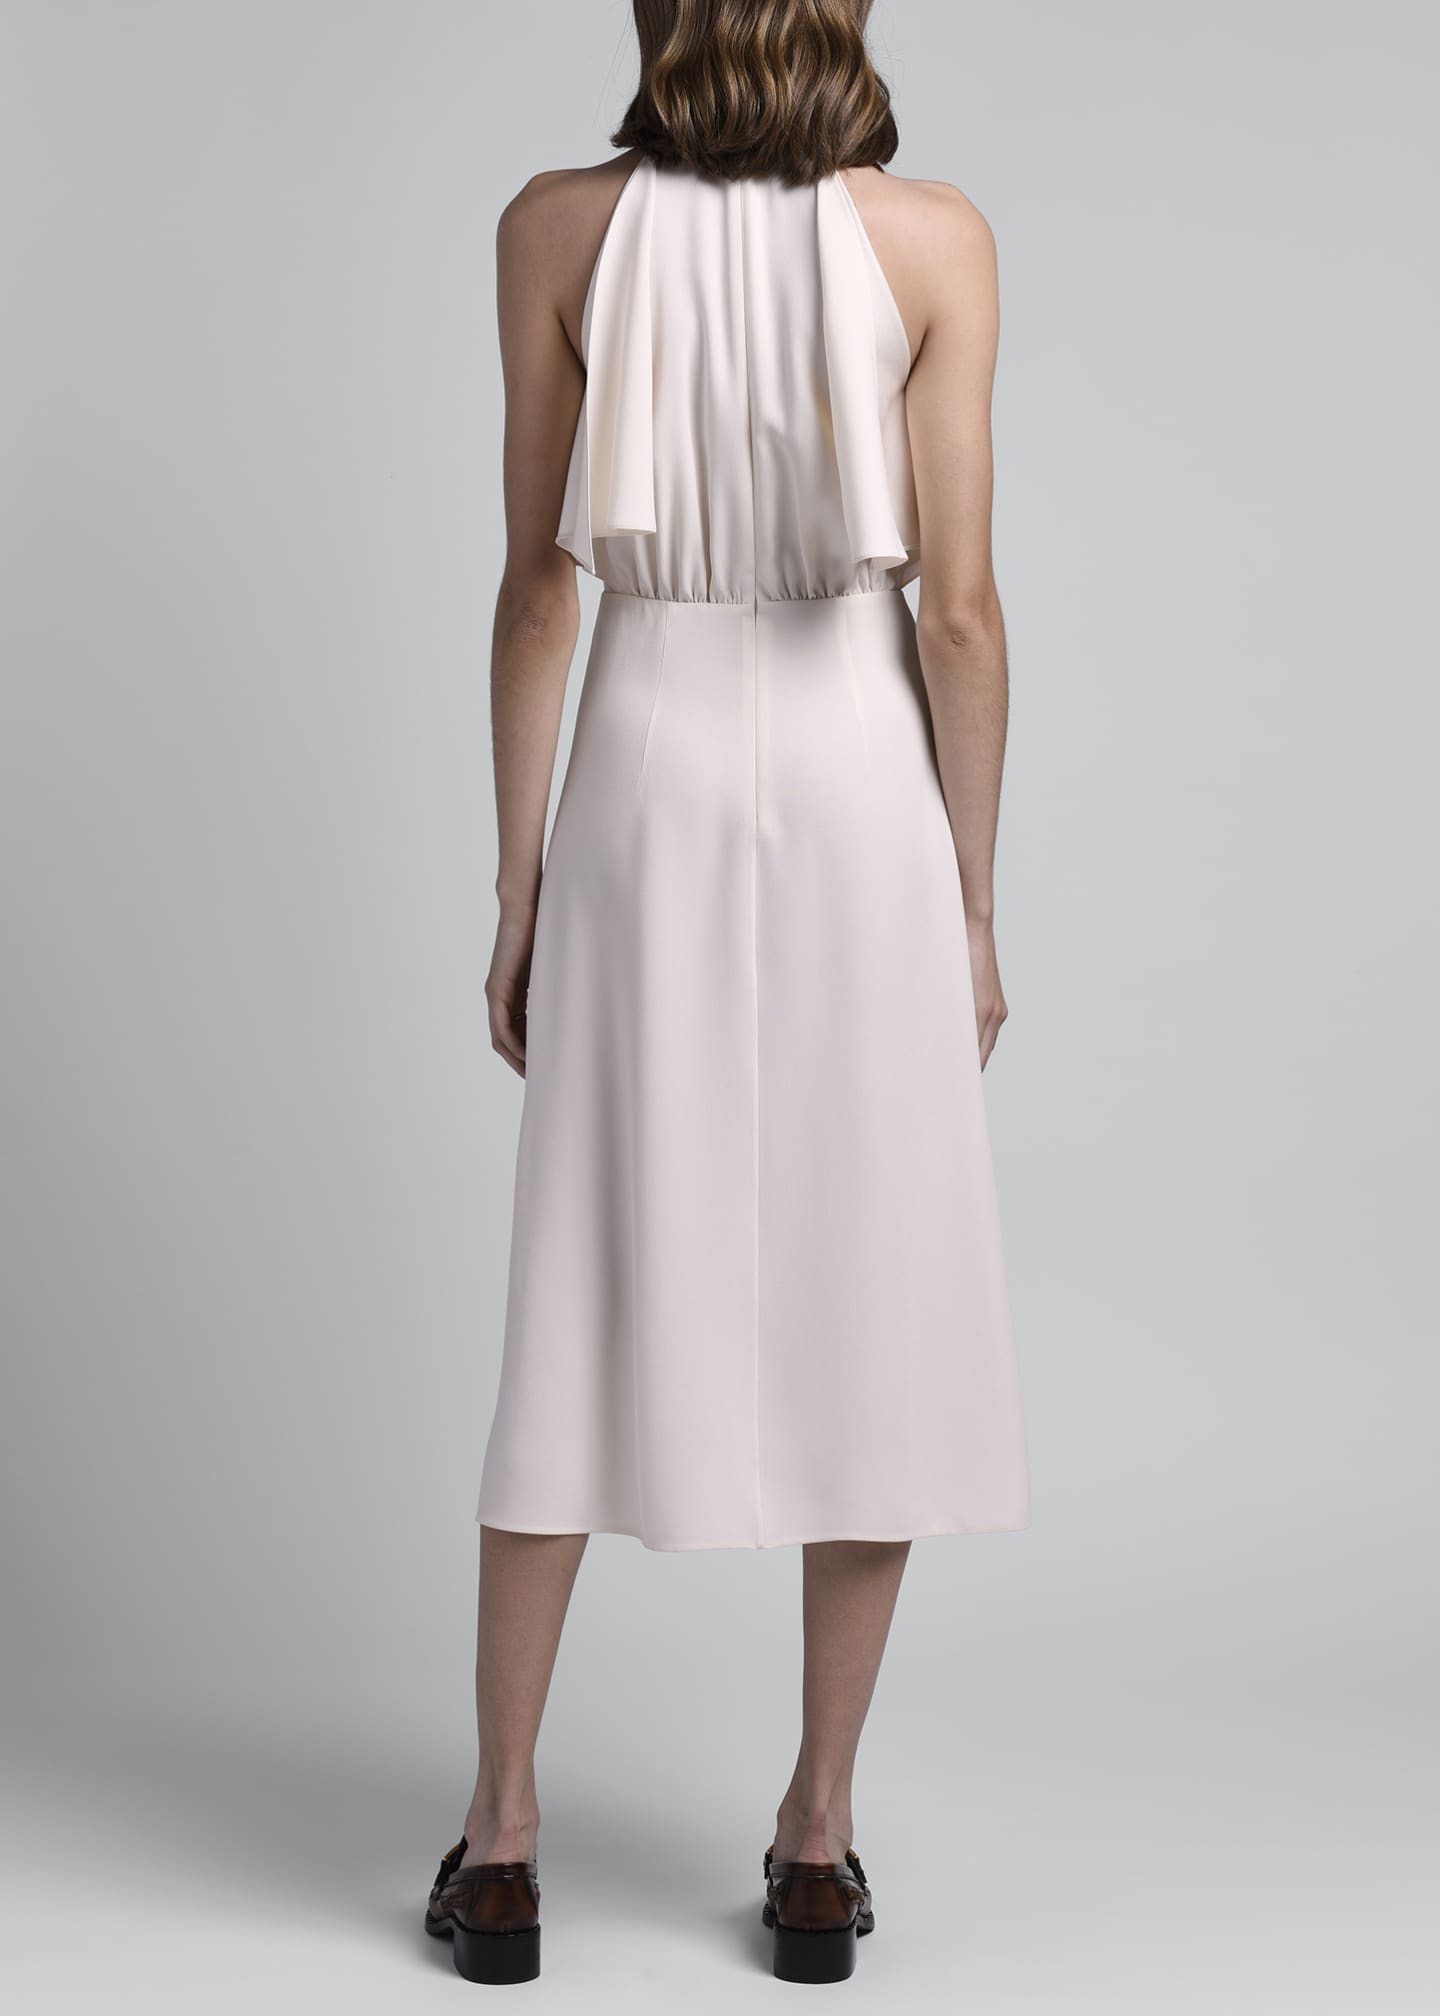 Image 2 of 3: Sable Raso High-Neck Sleeveless Dress